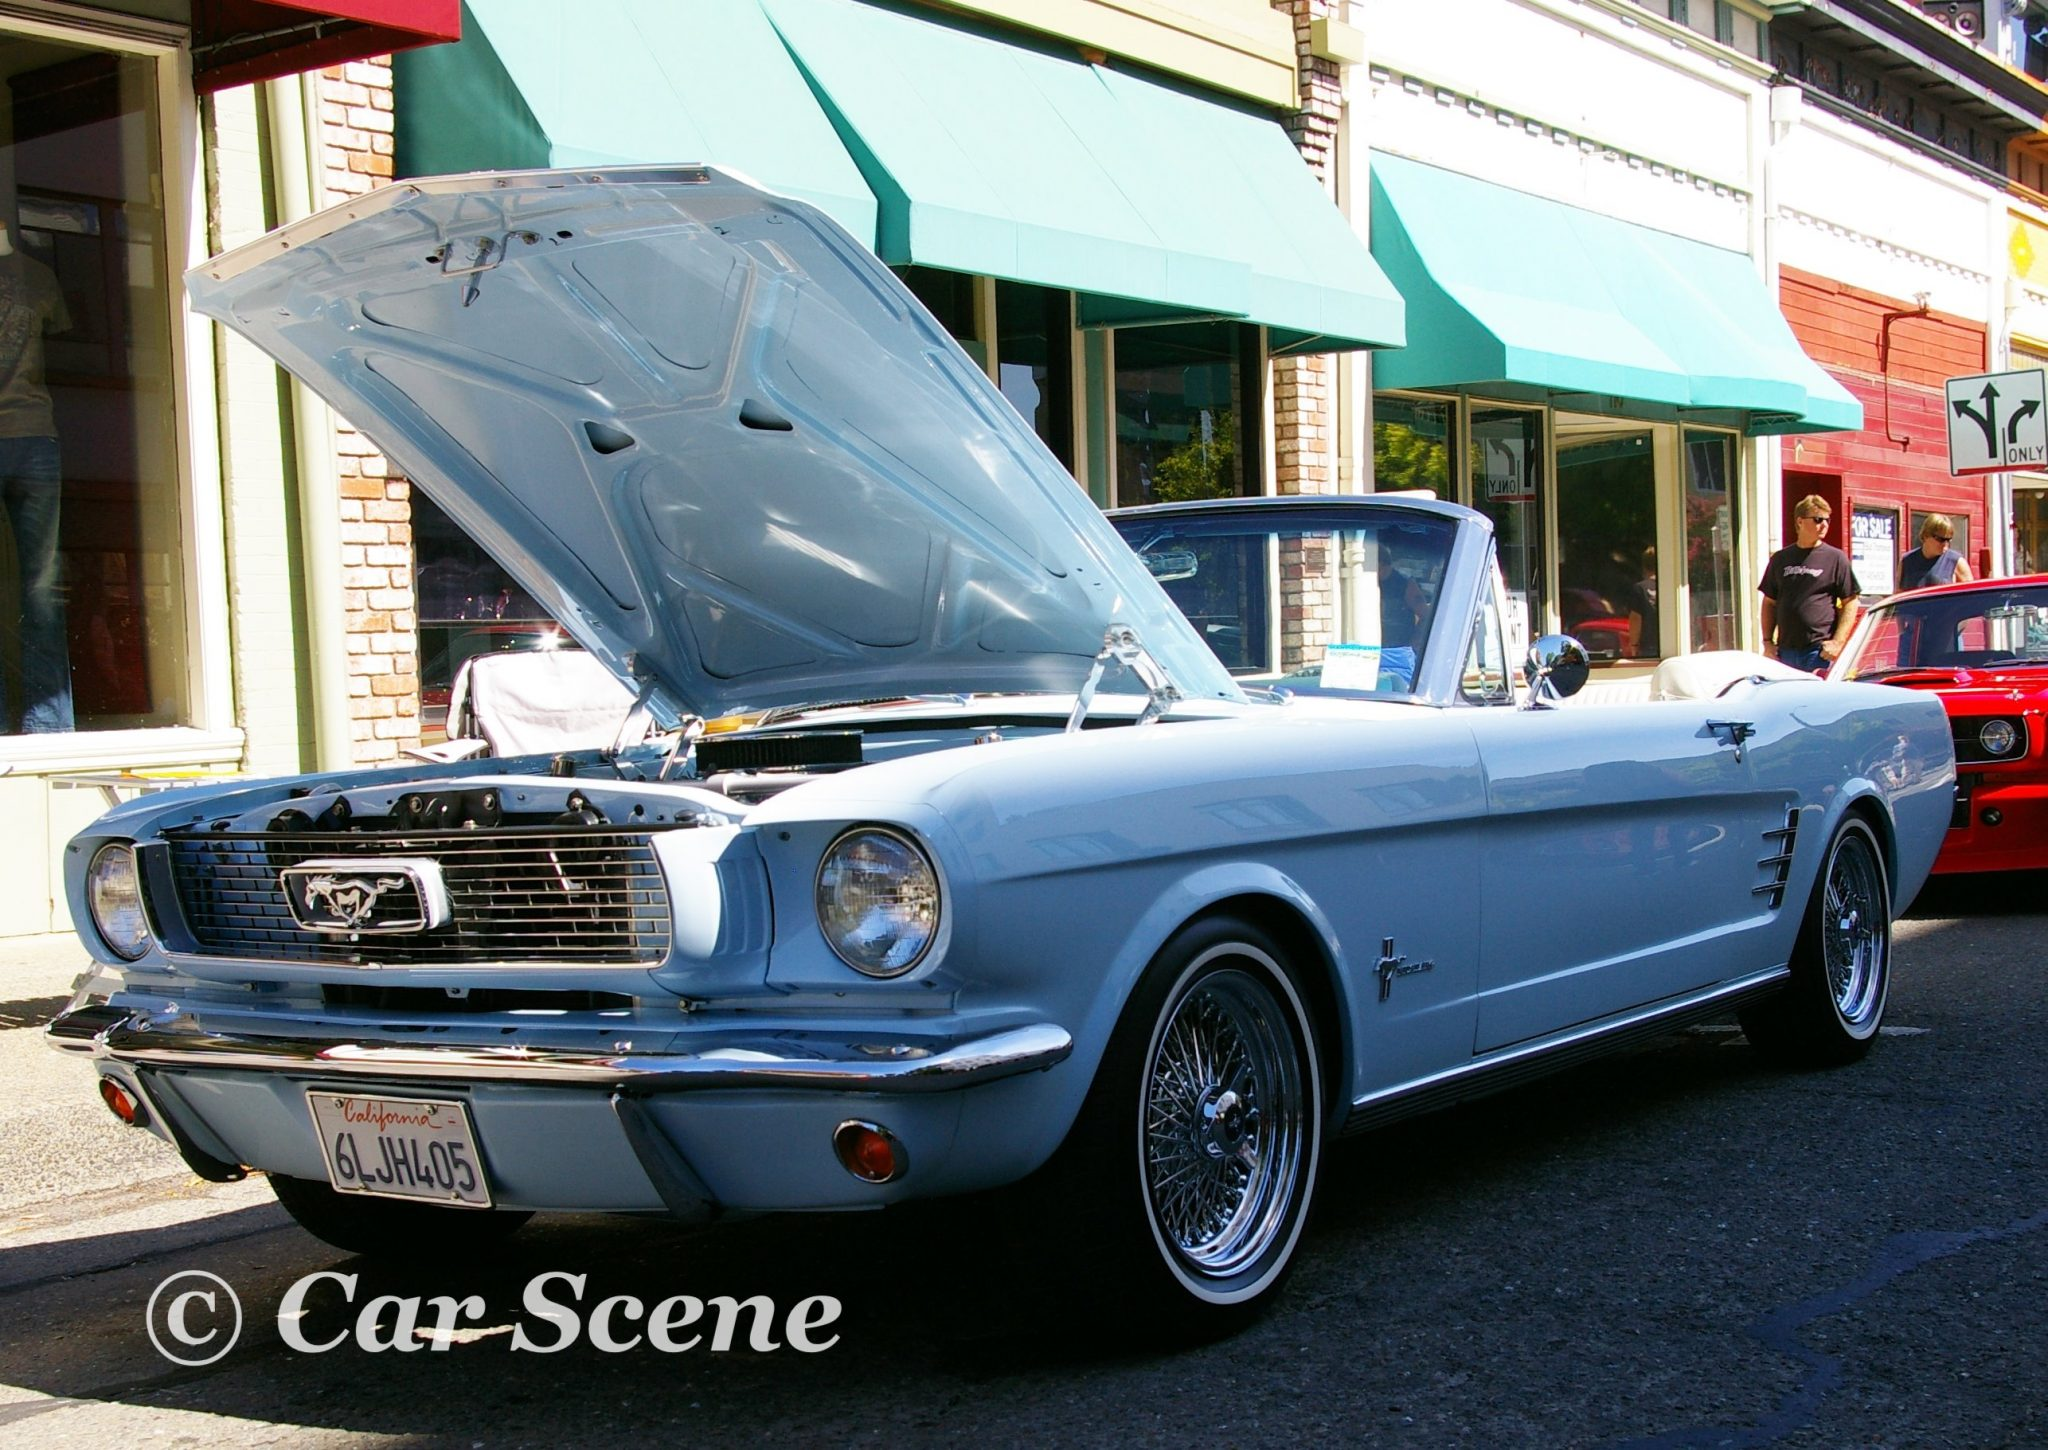 1964 Ford Mustang convertible front three quarters view